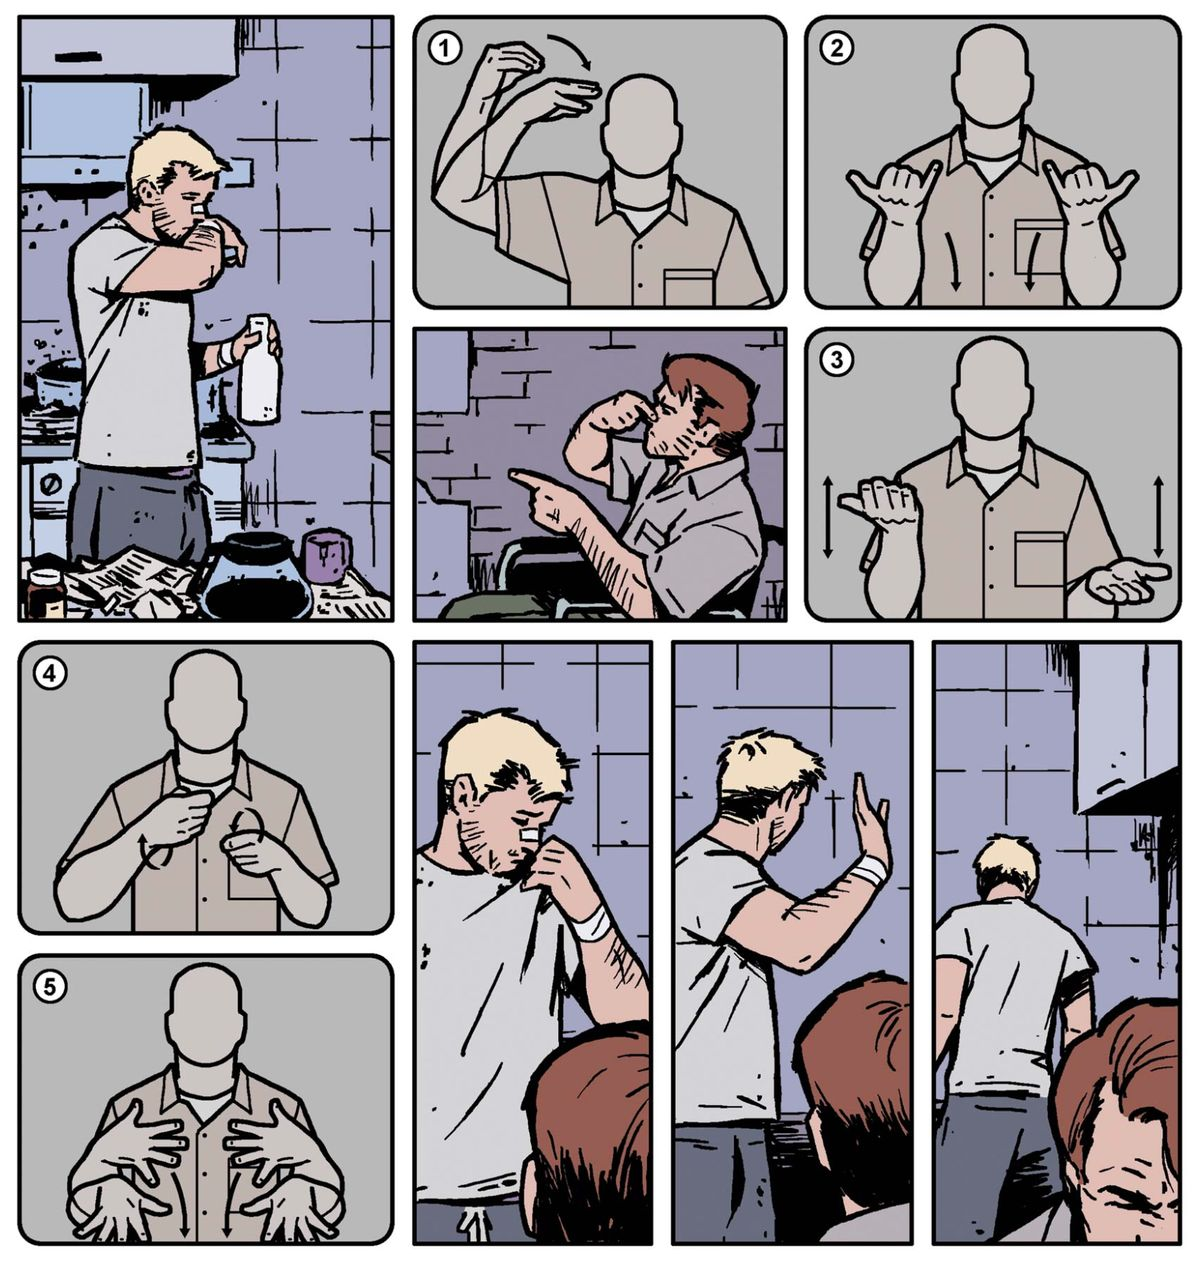 Hawkeye signs with his brother, Barney, in american sign language in Hawkeye #19, Marvel Comics (2014).